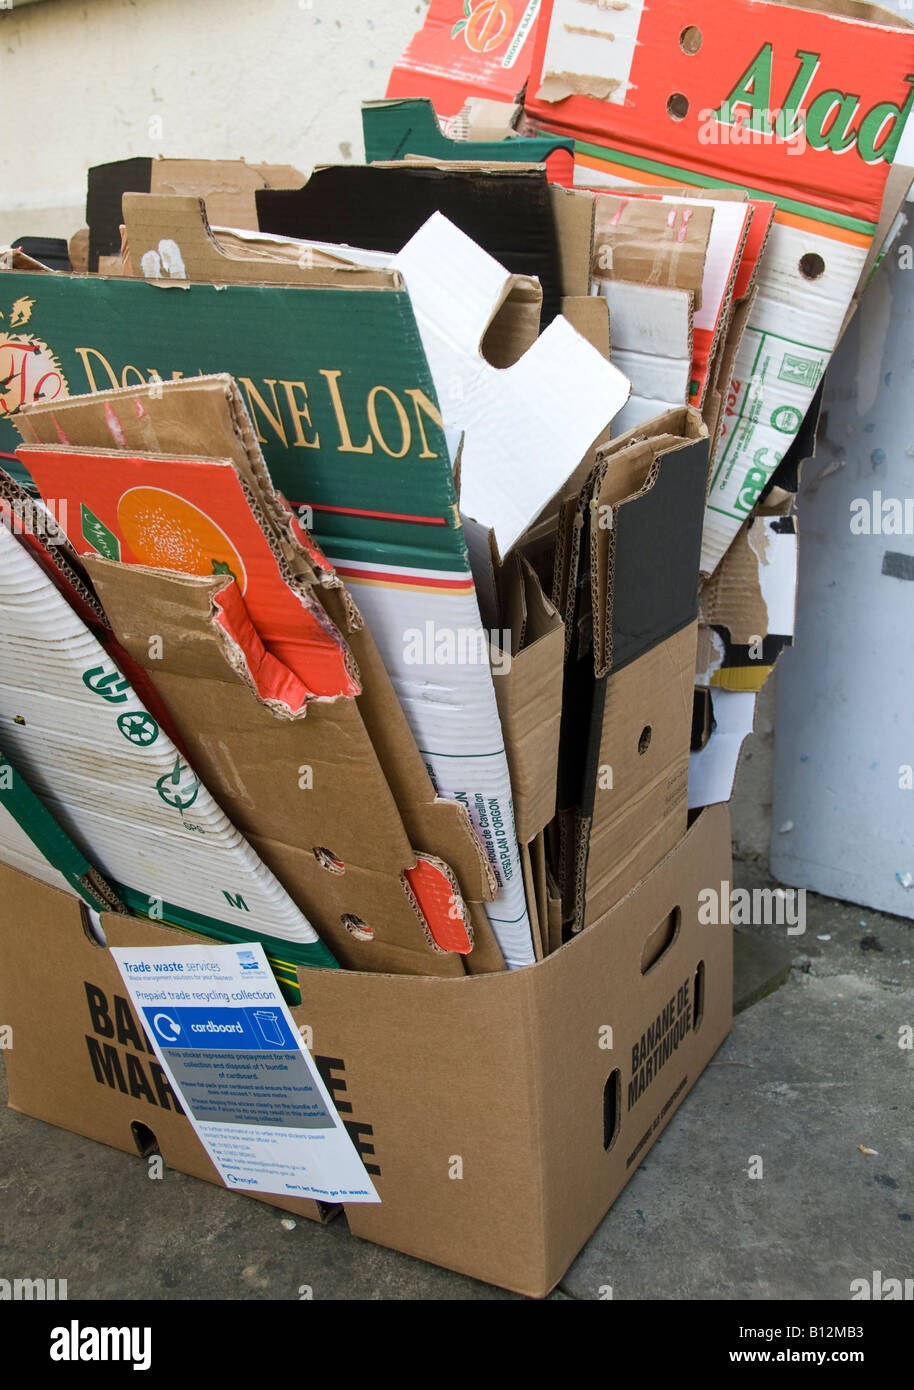 Cardboard for recycling - Stock Image